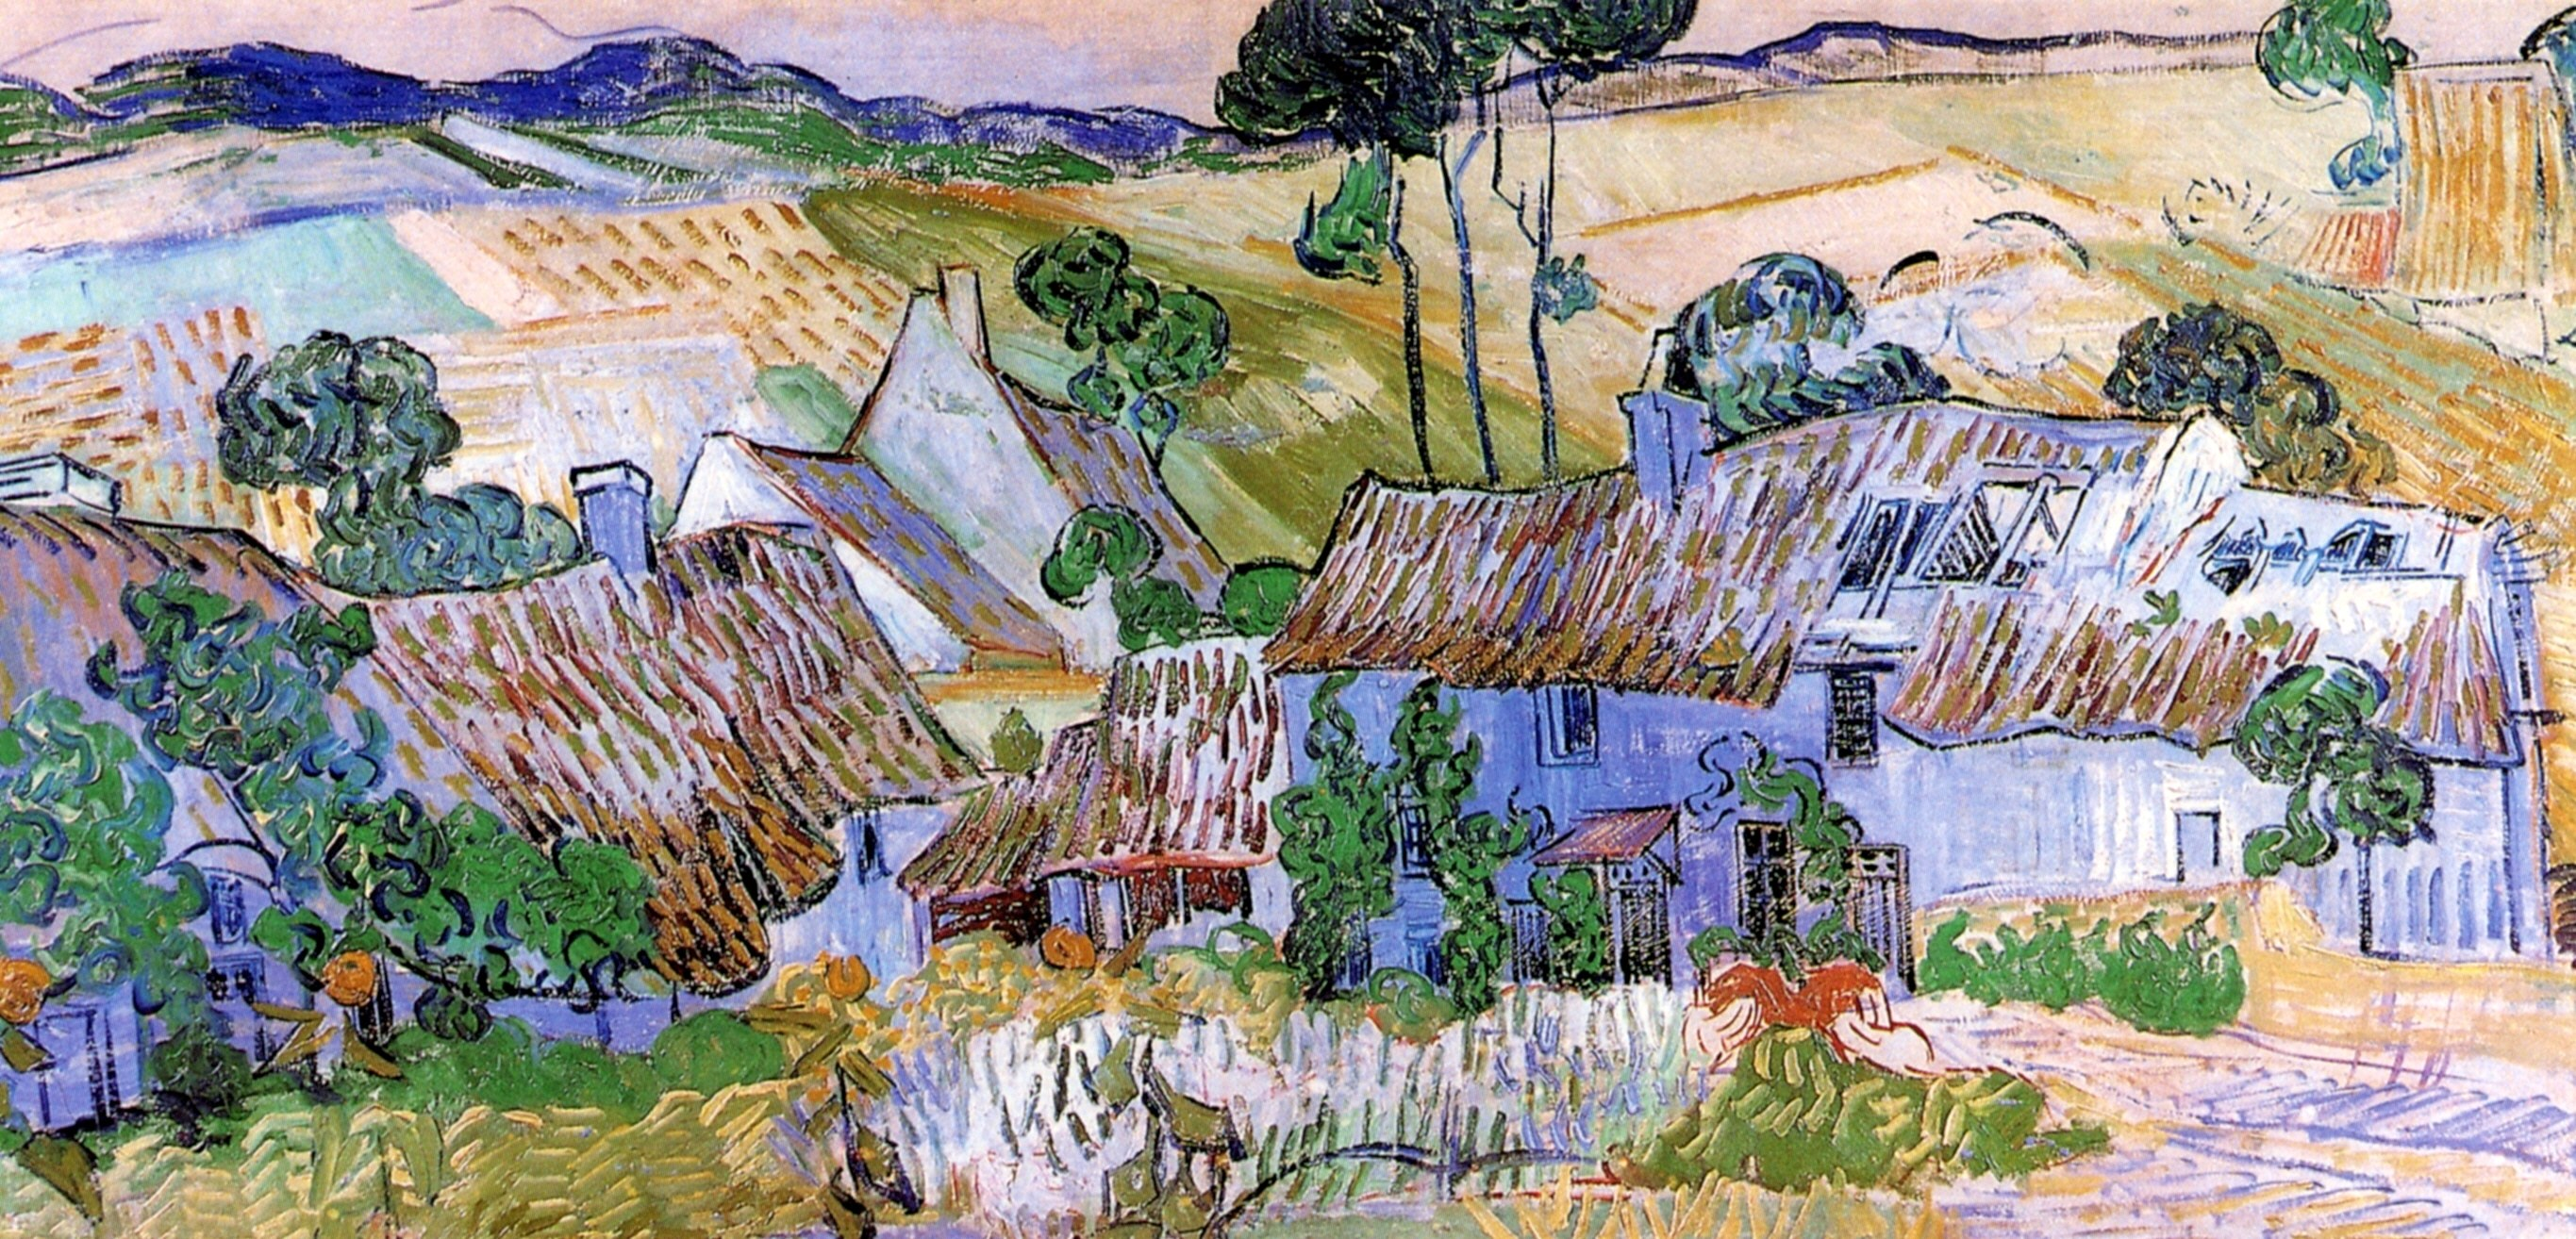 Thatched Cottages by a Hill 1890